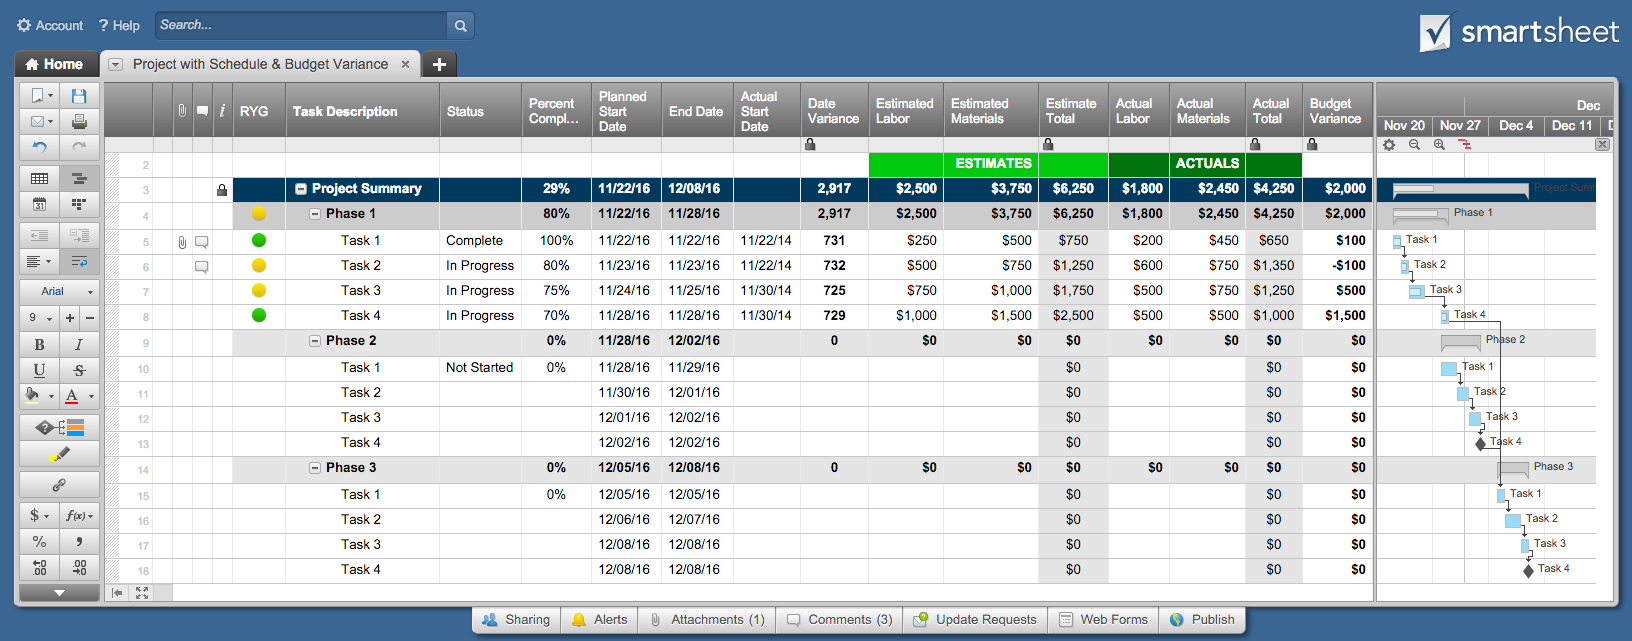 Free Excel Project Management Templates In Project Expense Tracking Spreadsheet